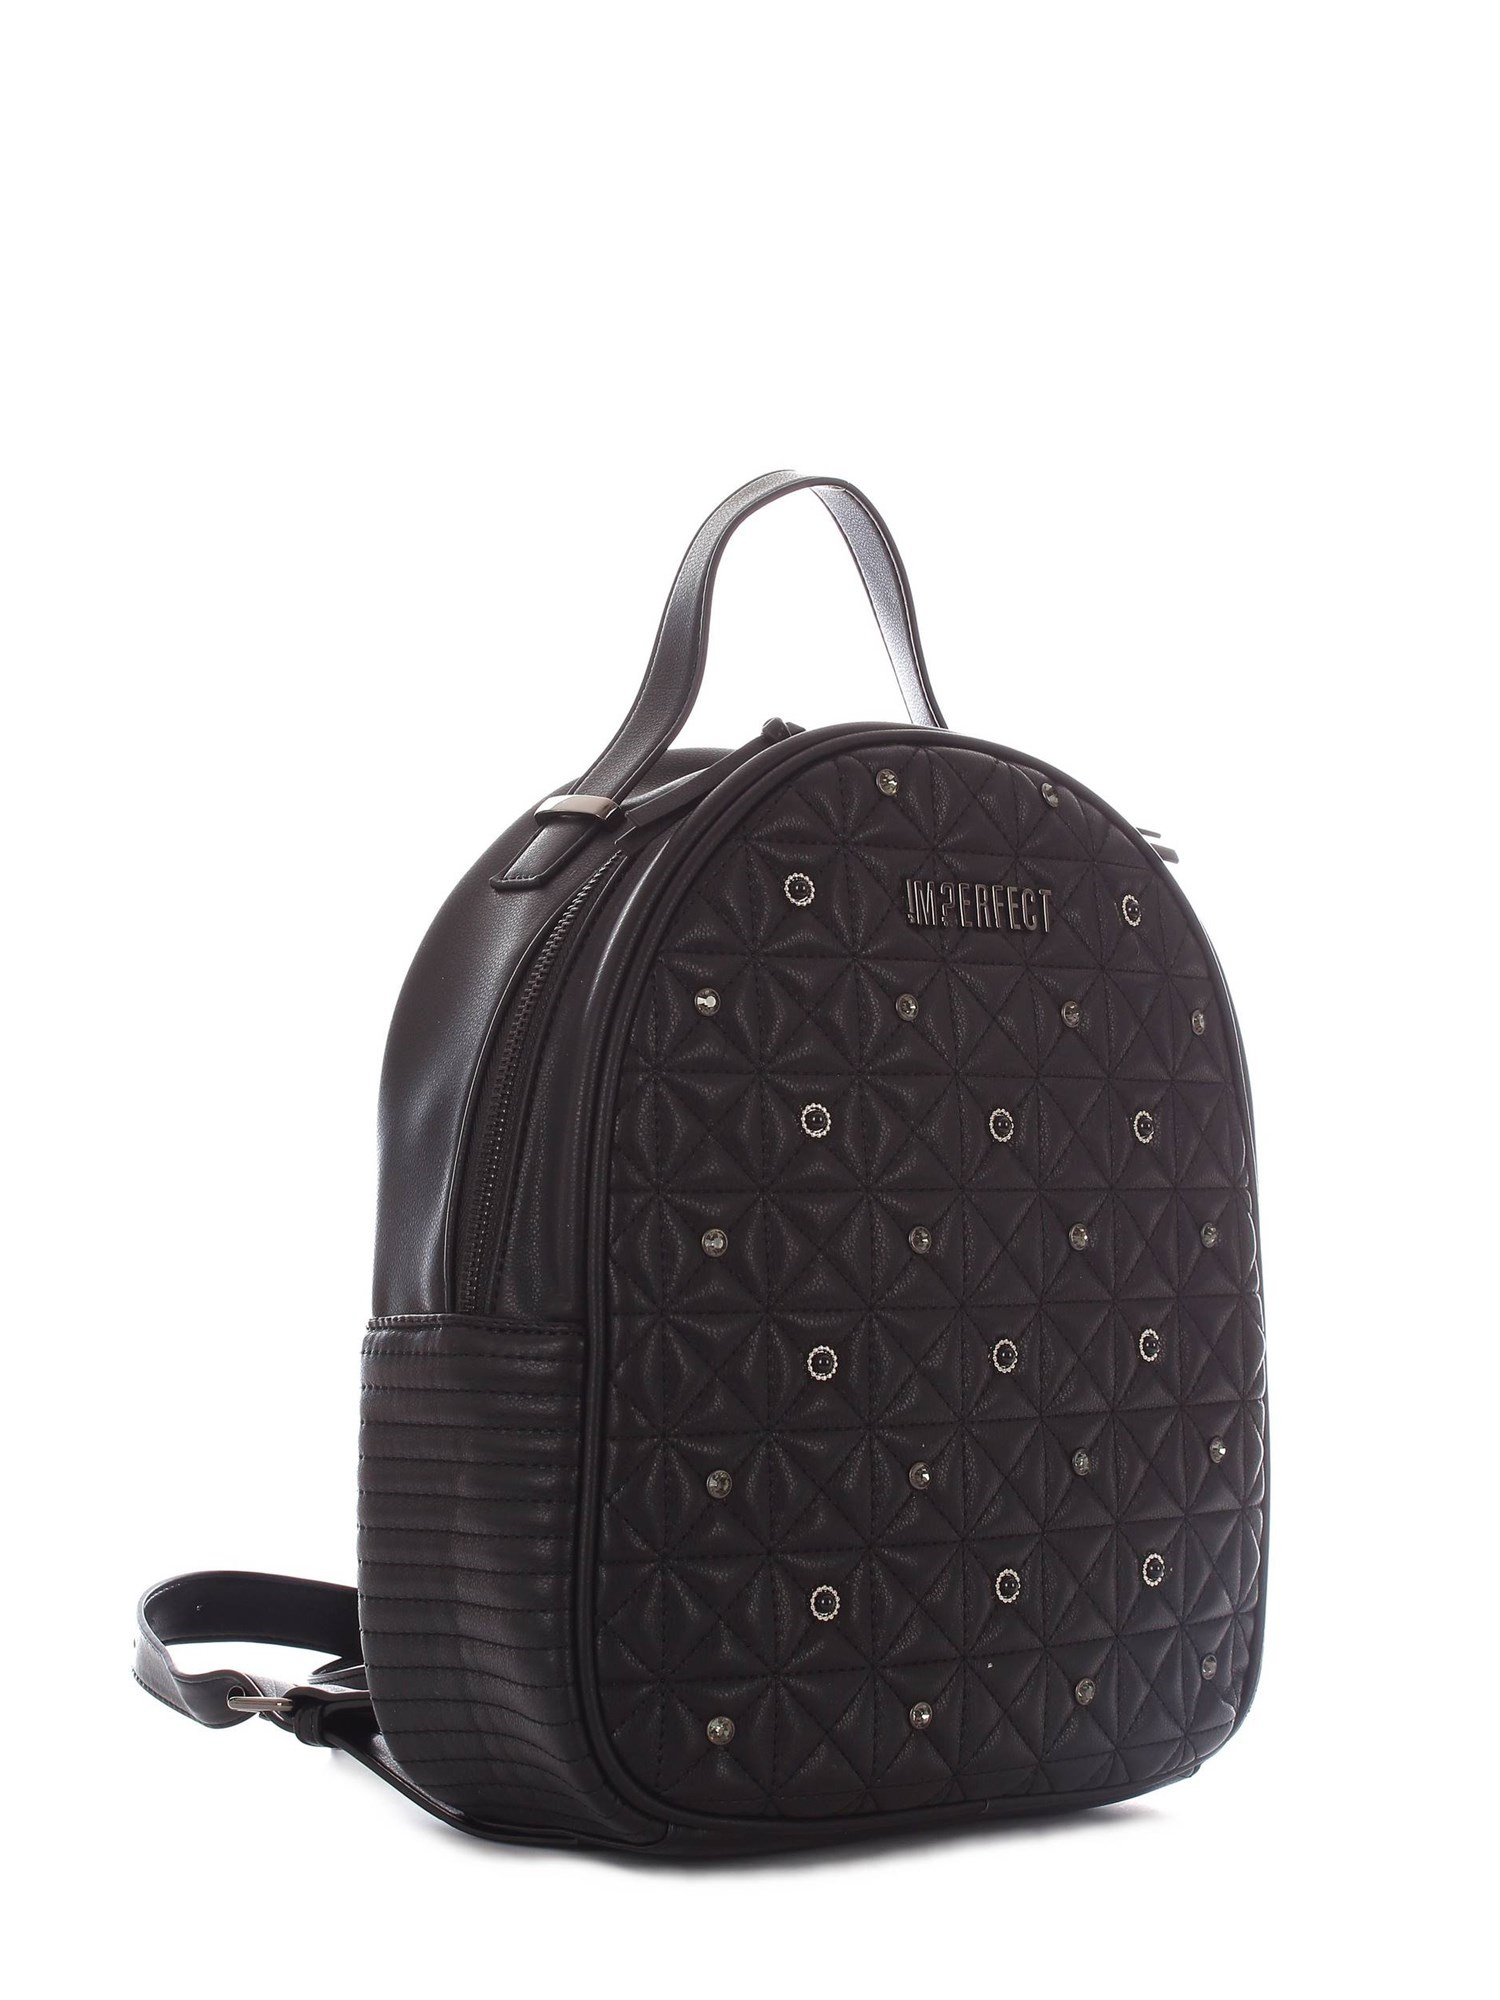 d692fc8981 Backpack Imperfect Woman - Black - Buy Backpack On line on Gruppo ...